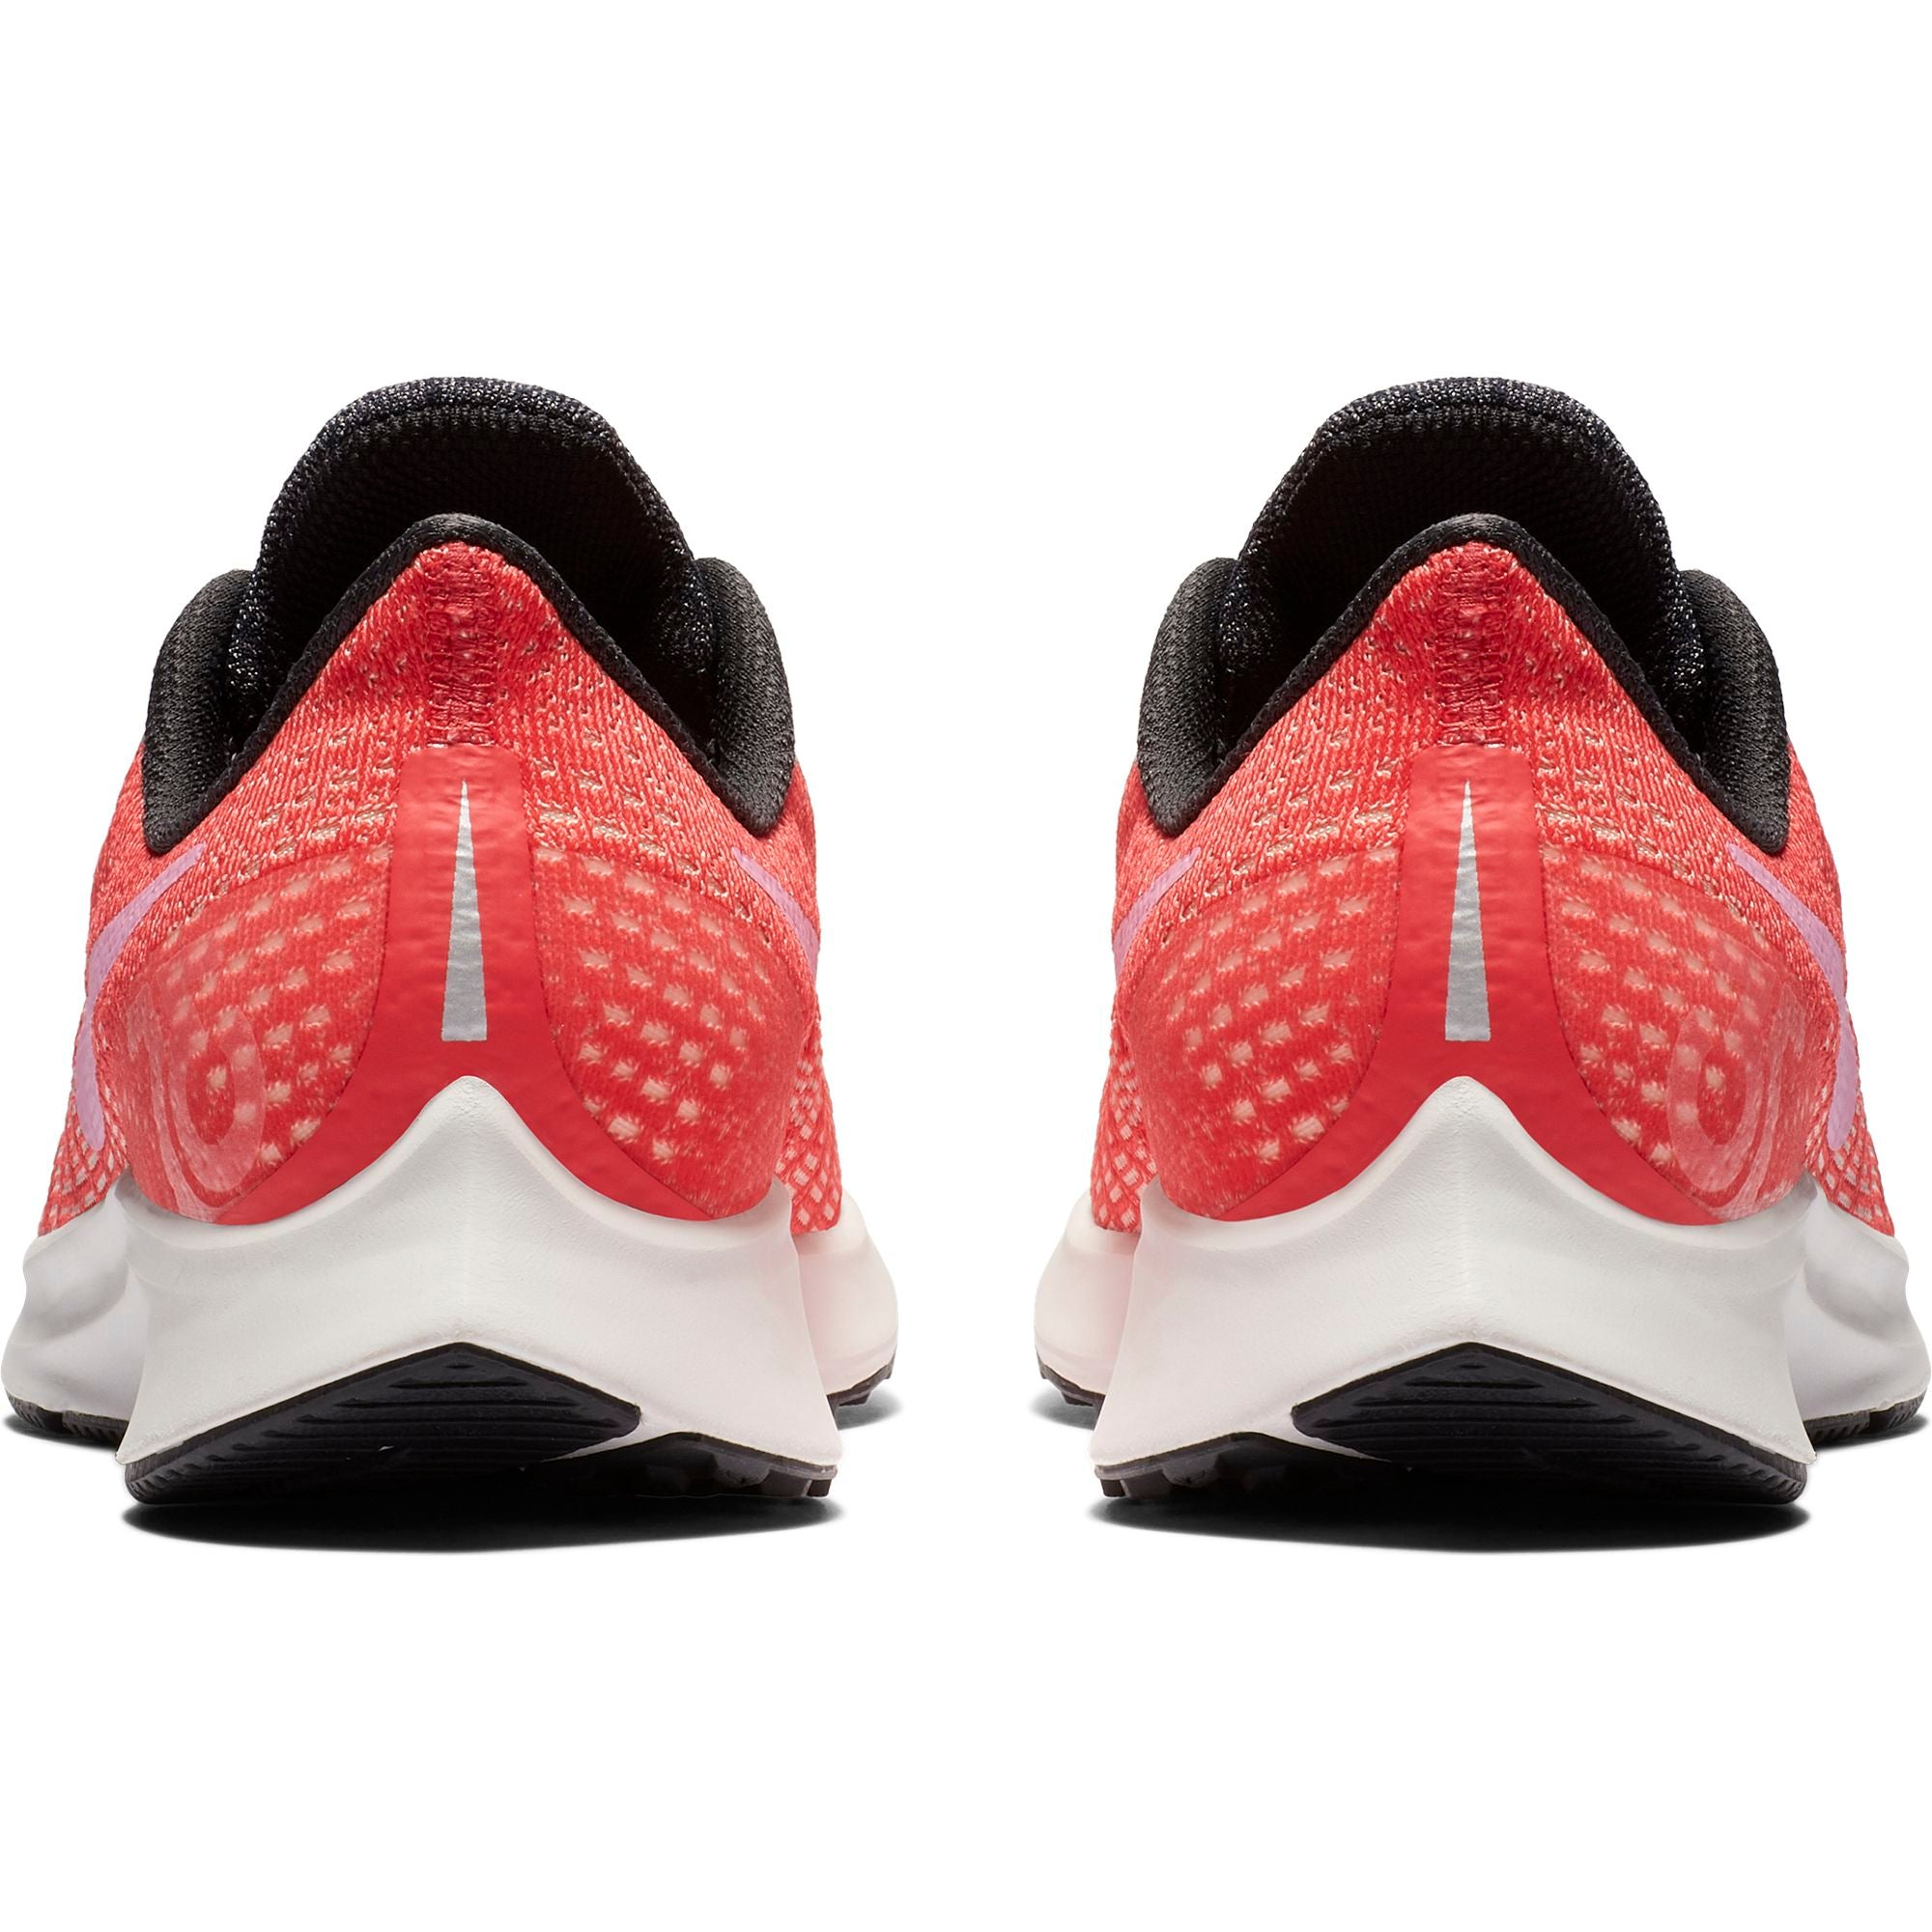 302aa53c6cf7 ... Women s Air Zoom Pegasus 35 Running Shoe - Ember Glow Physic Pink Oil  ...